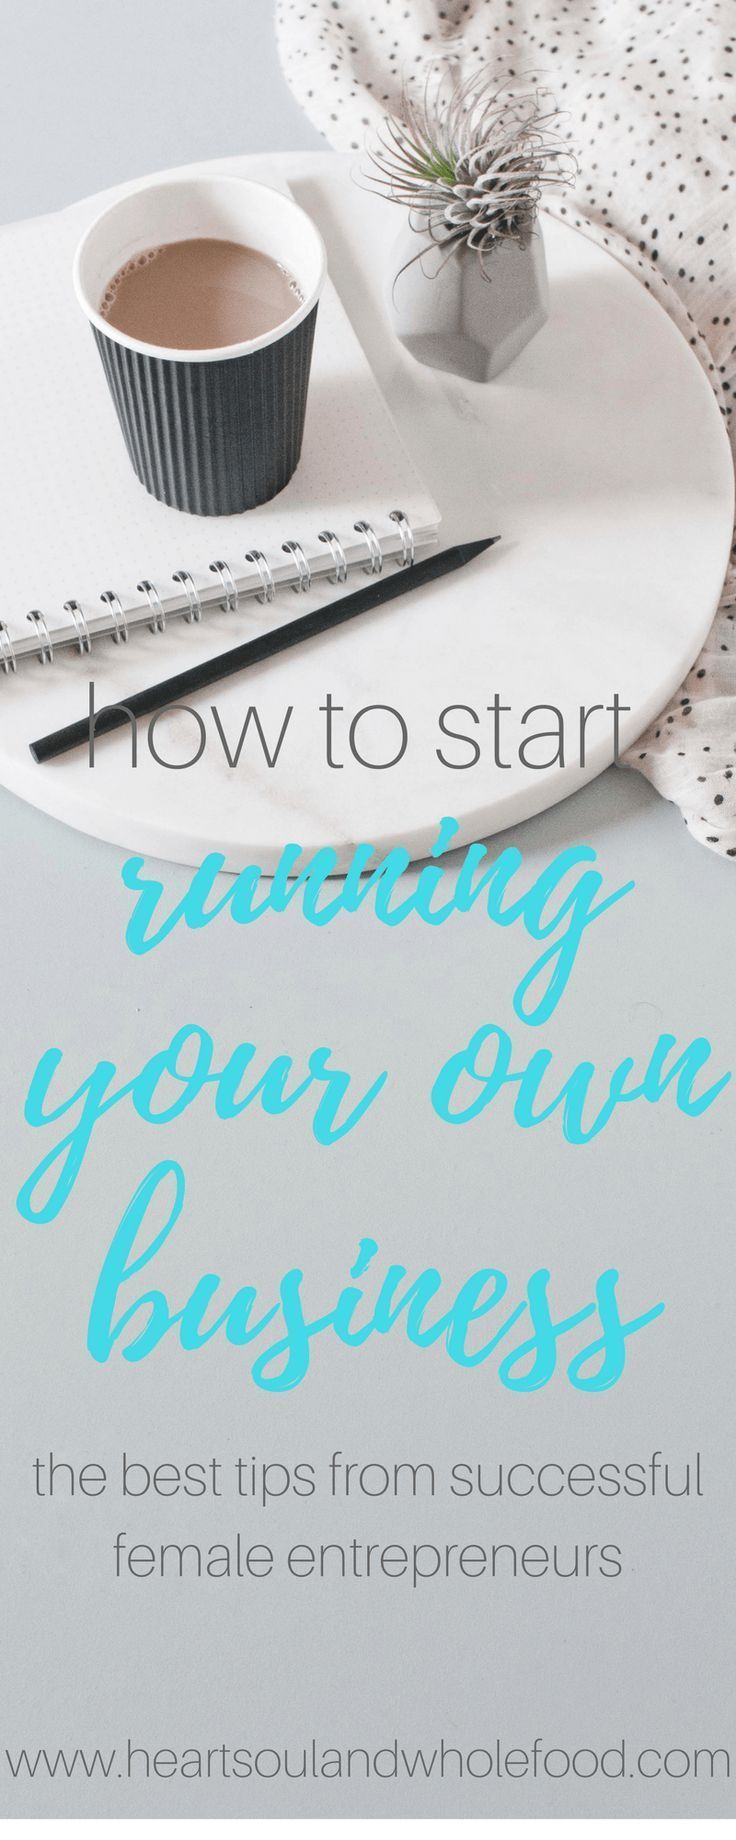 how to start your own small business